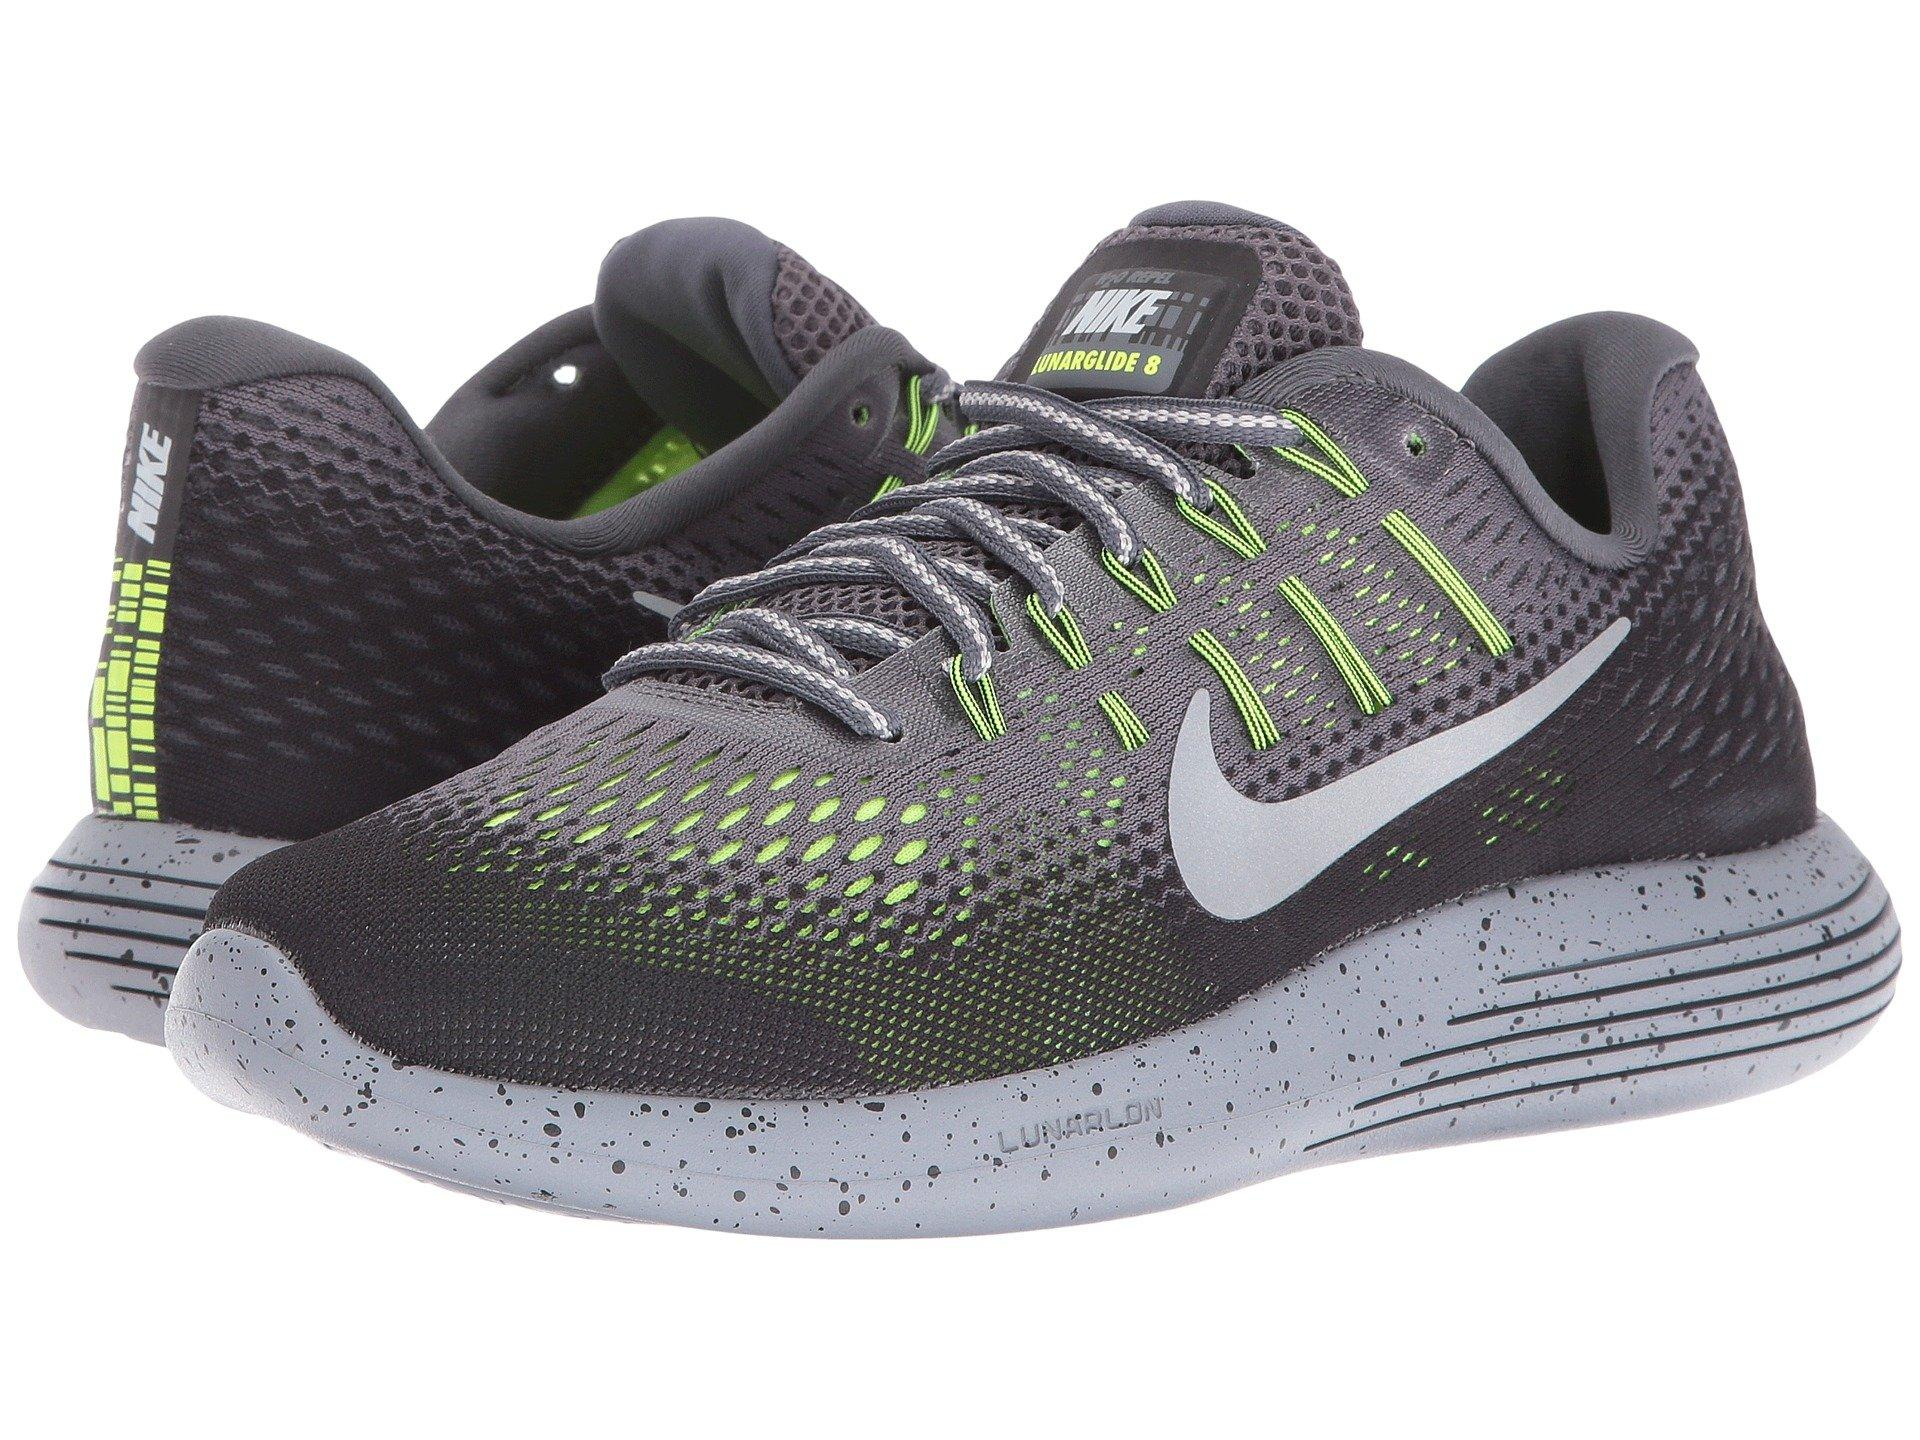 quality design 94a55 c87d2 Nike Lunarglide 8 Shield In Dark Grey Metallic Silver Black Volt